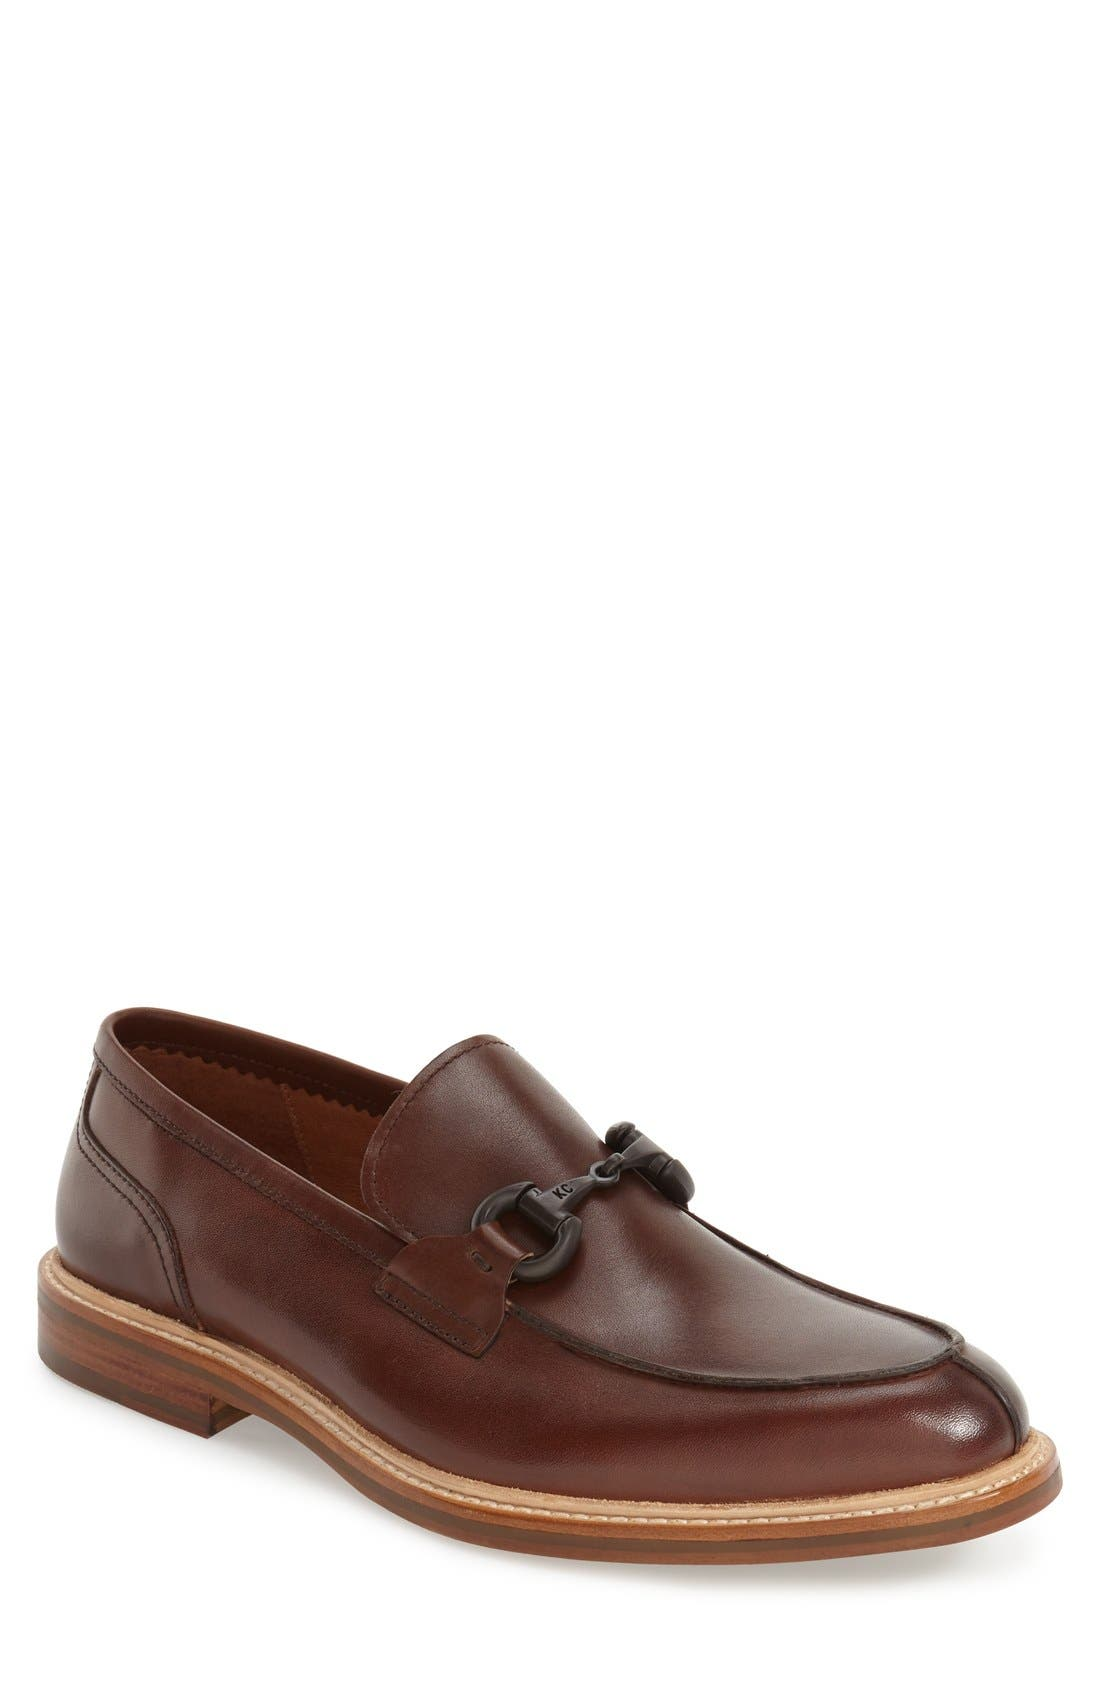 Alternate Image 1 Selected - Kenneth Cole New York 'Bud-Dy List' Venetian Loafer (Men)